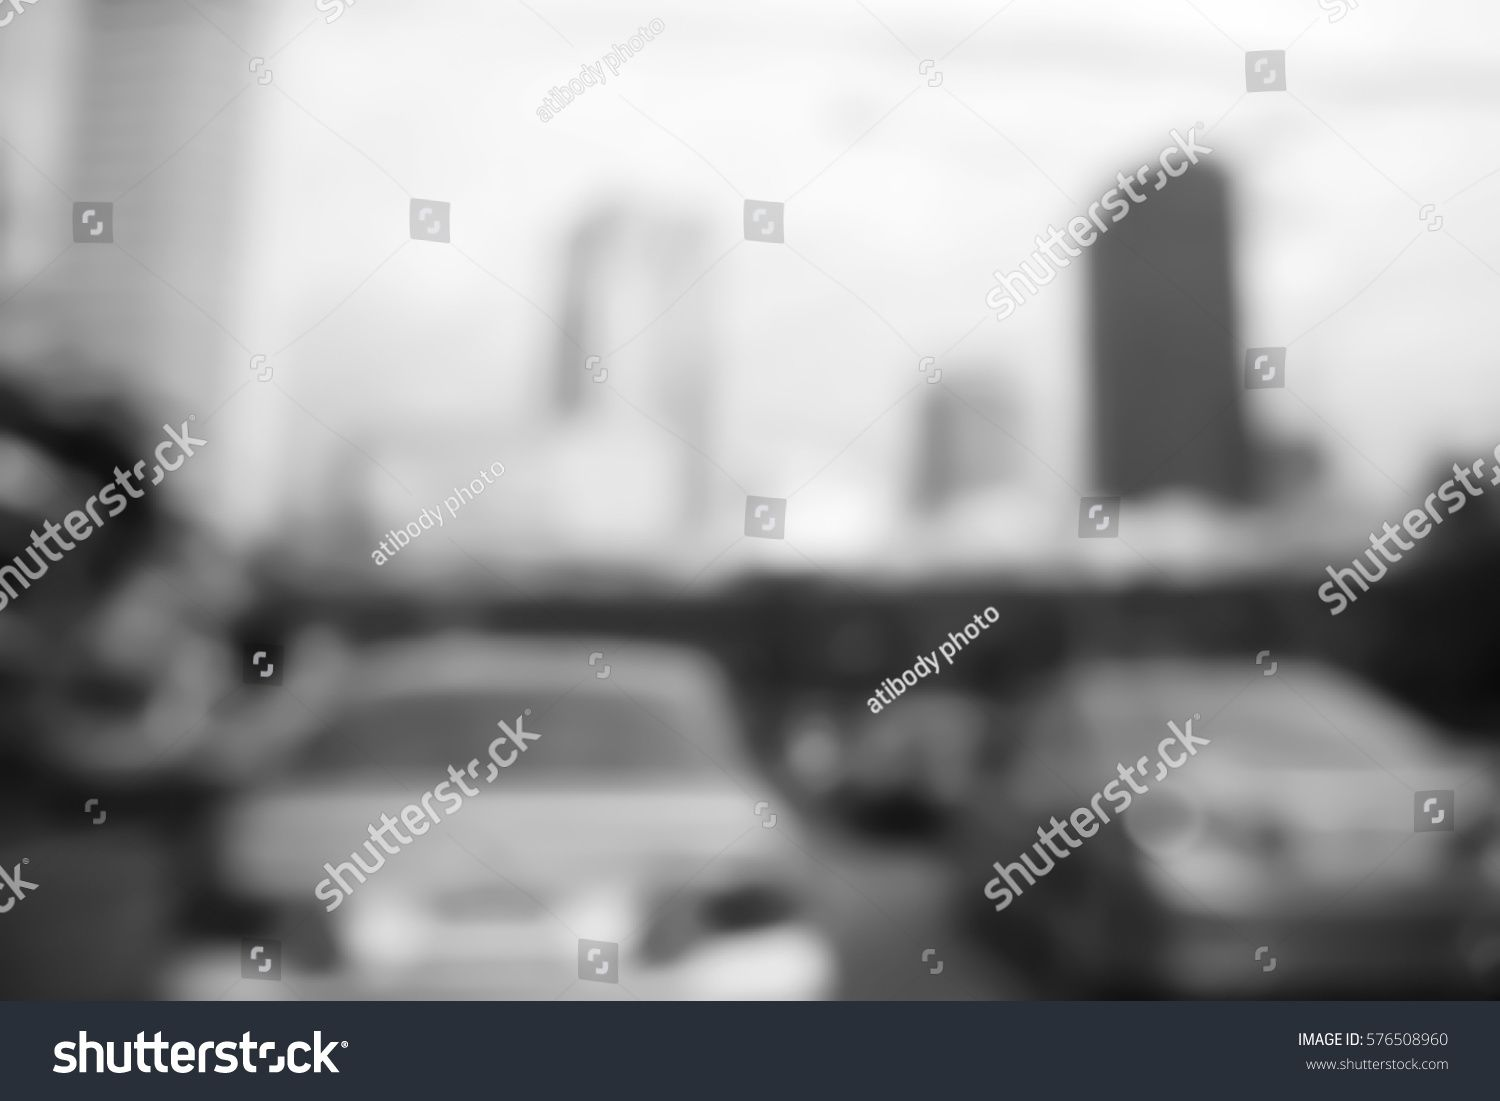 Blurred background abstract and can be illustration to article of traffic in bangkok #Sponsored , #AFF, #abstract#background#Blurred#illustration